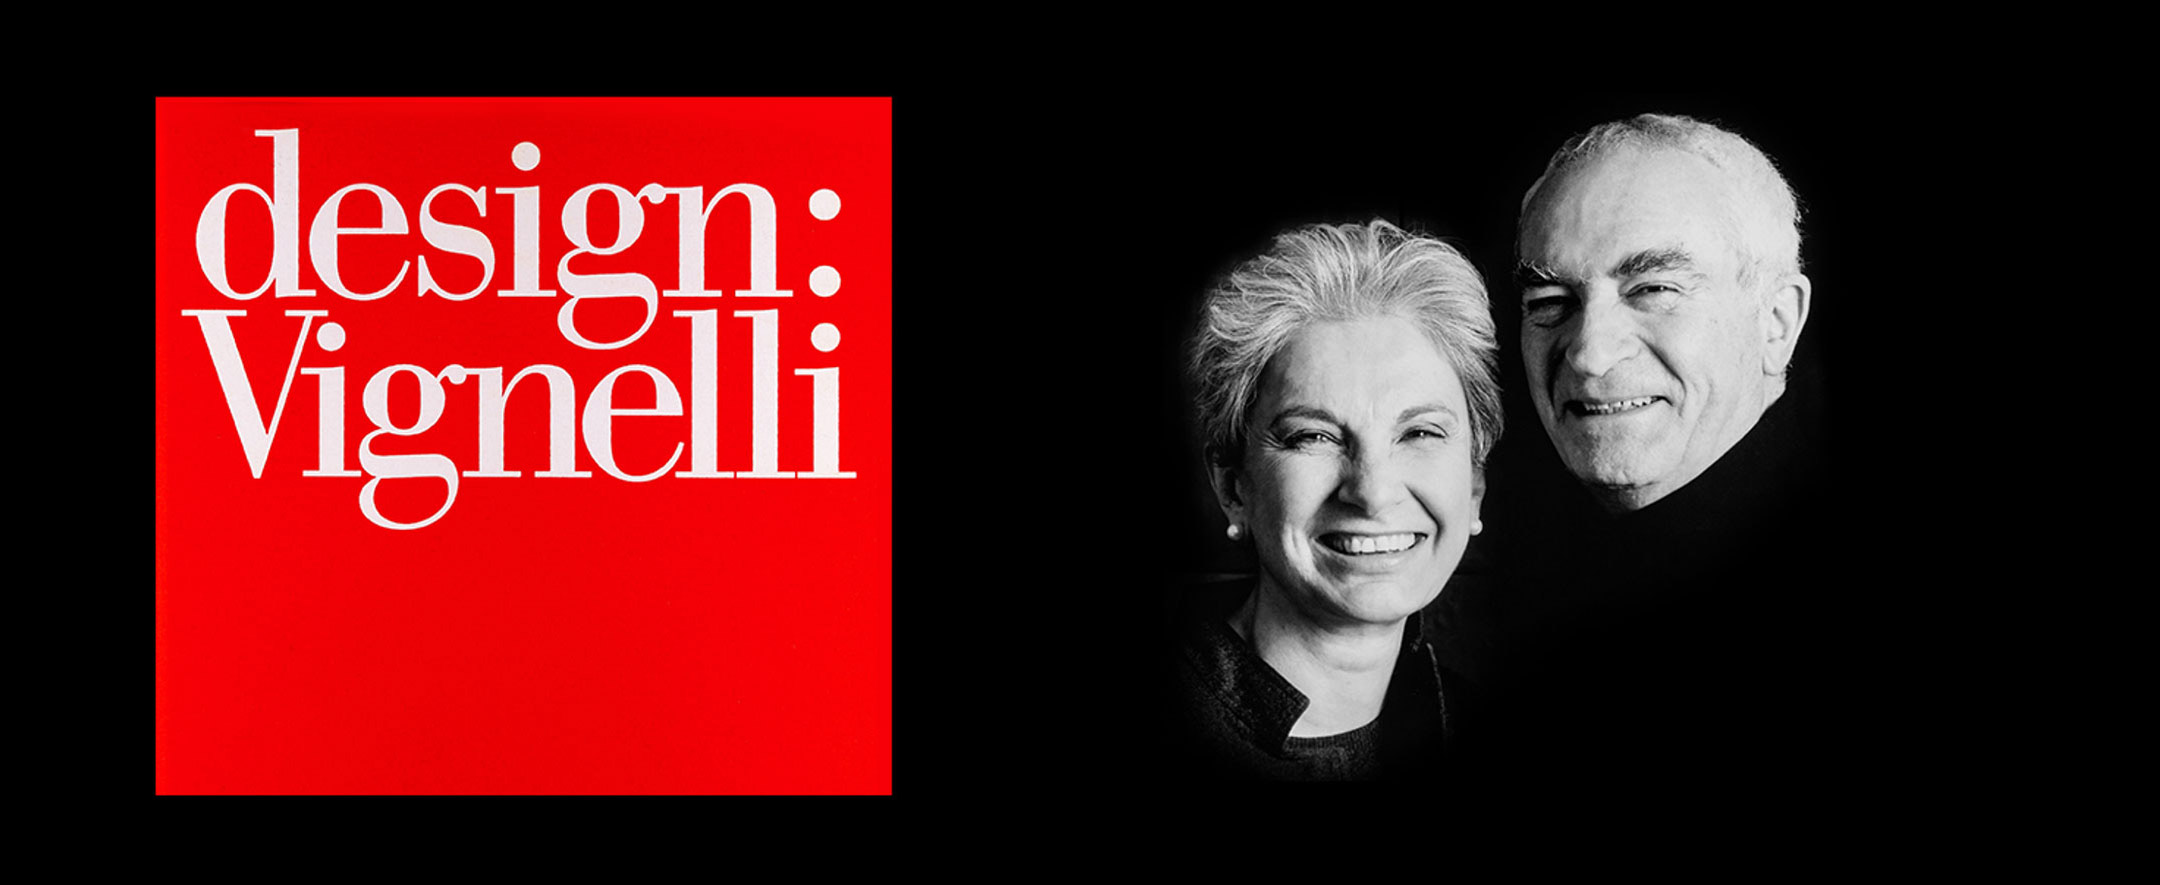 "a black image with Massimo and Lella Vignelli, with the text ""design: Vignelli"" on a red background"